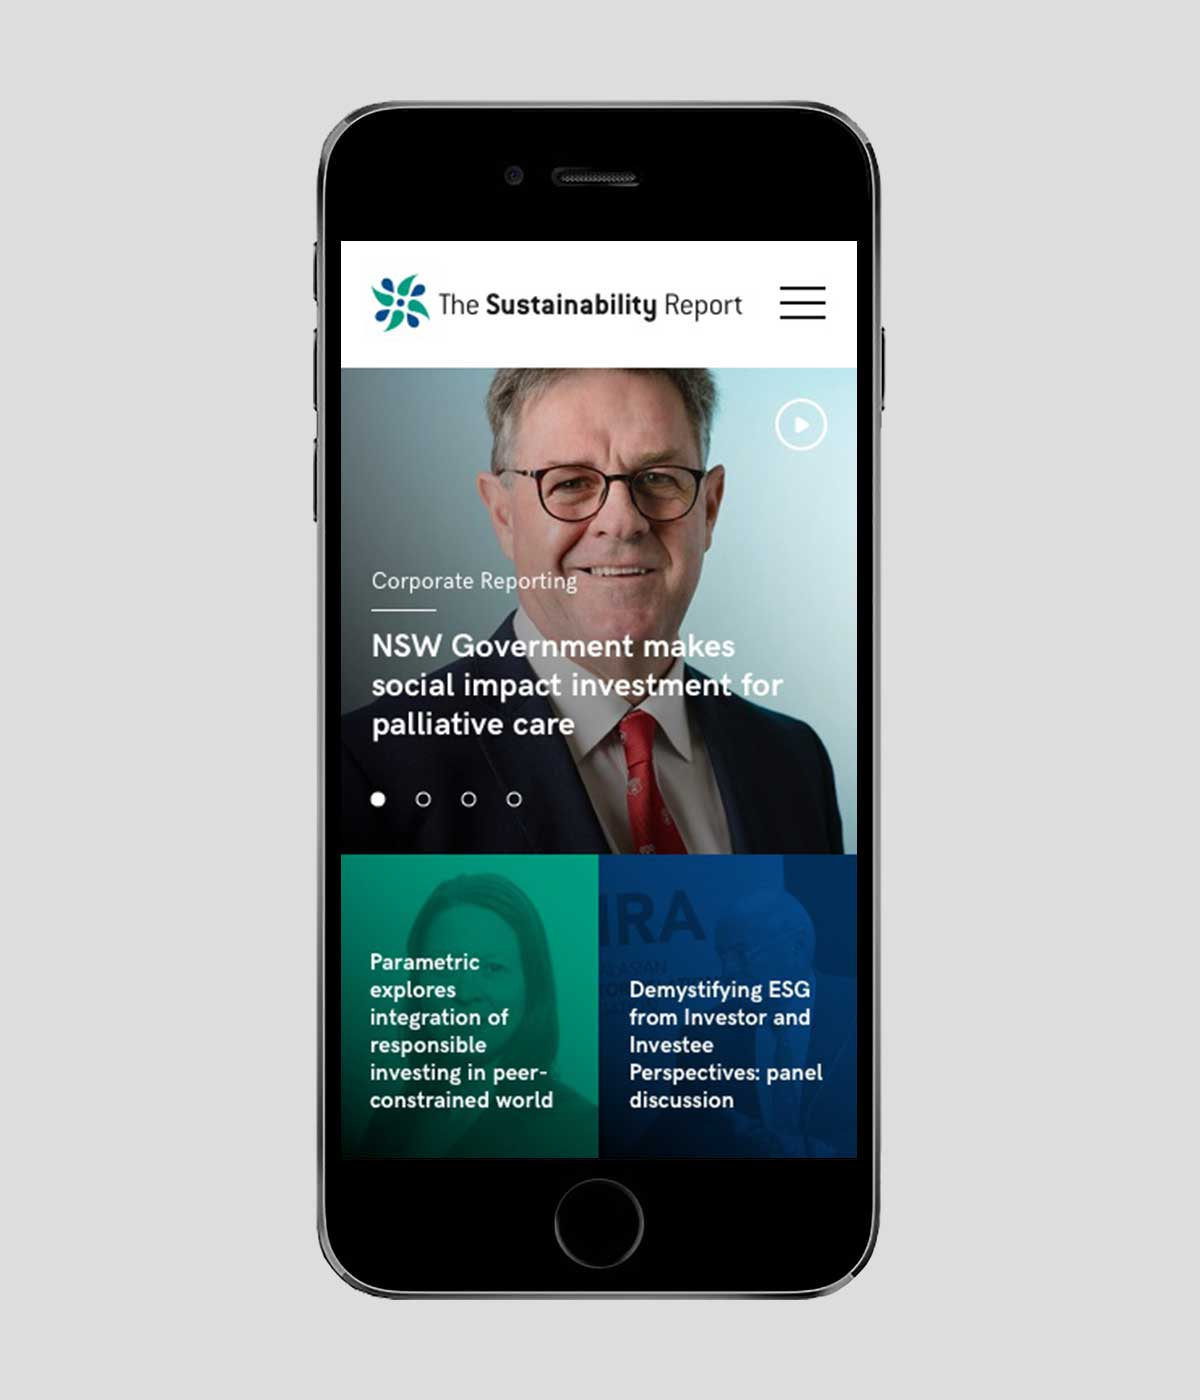 The Sustainability Report responsive website design on iPhone in portrait view